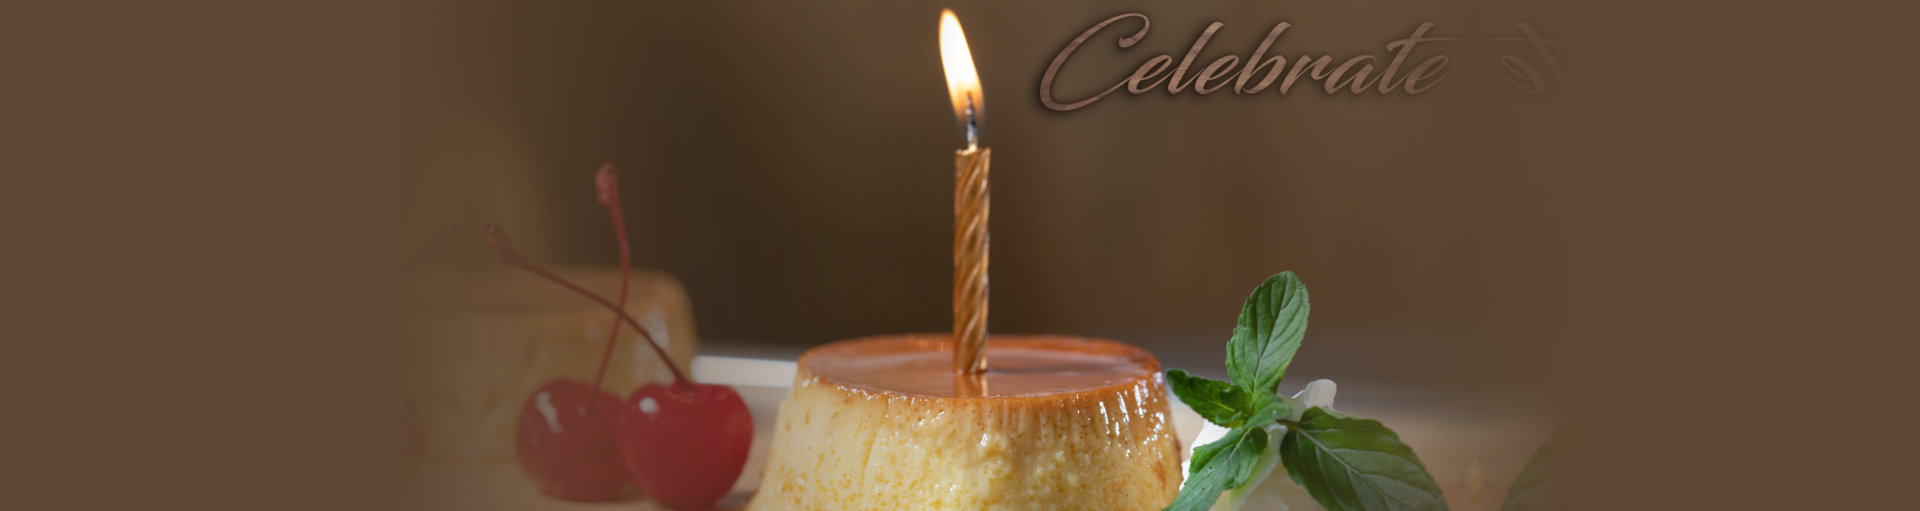 flan with candle